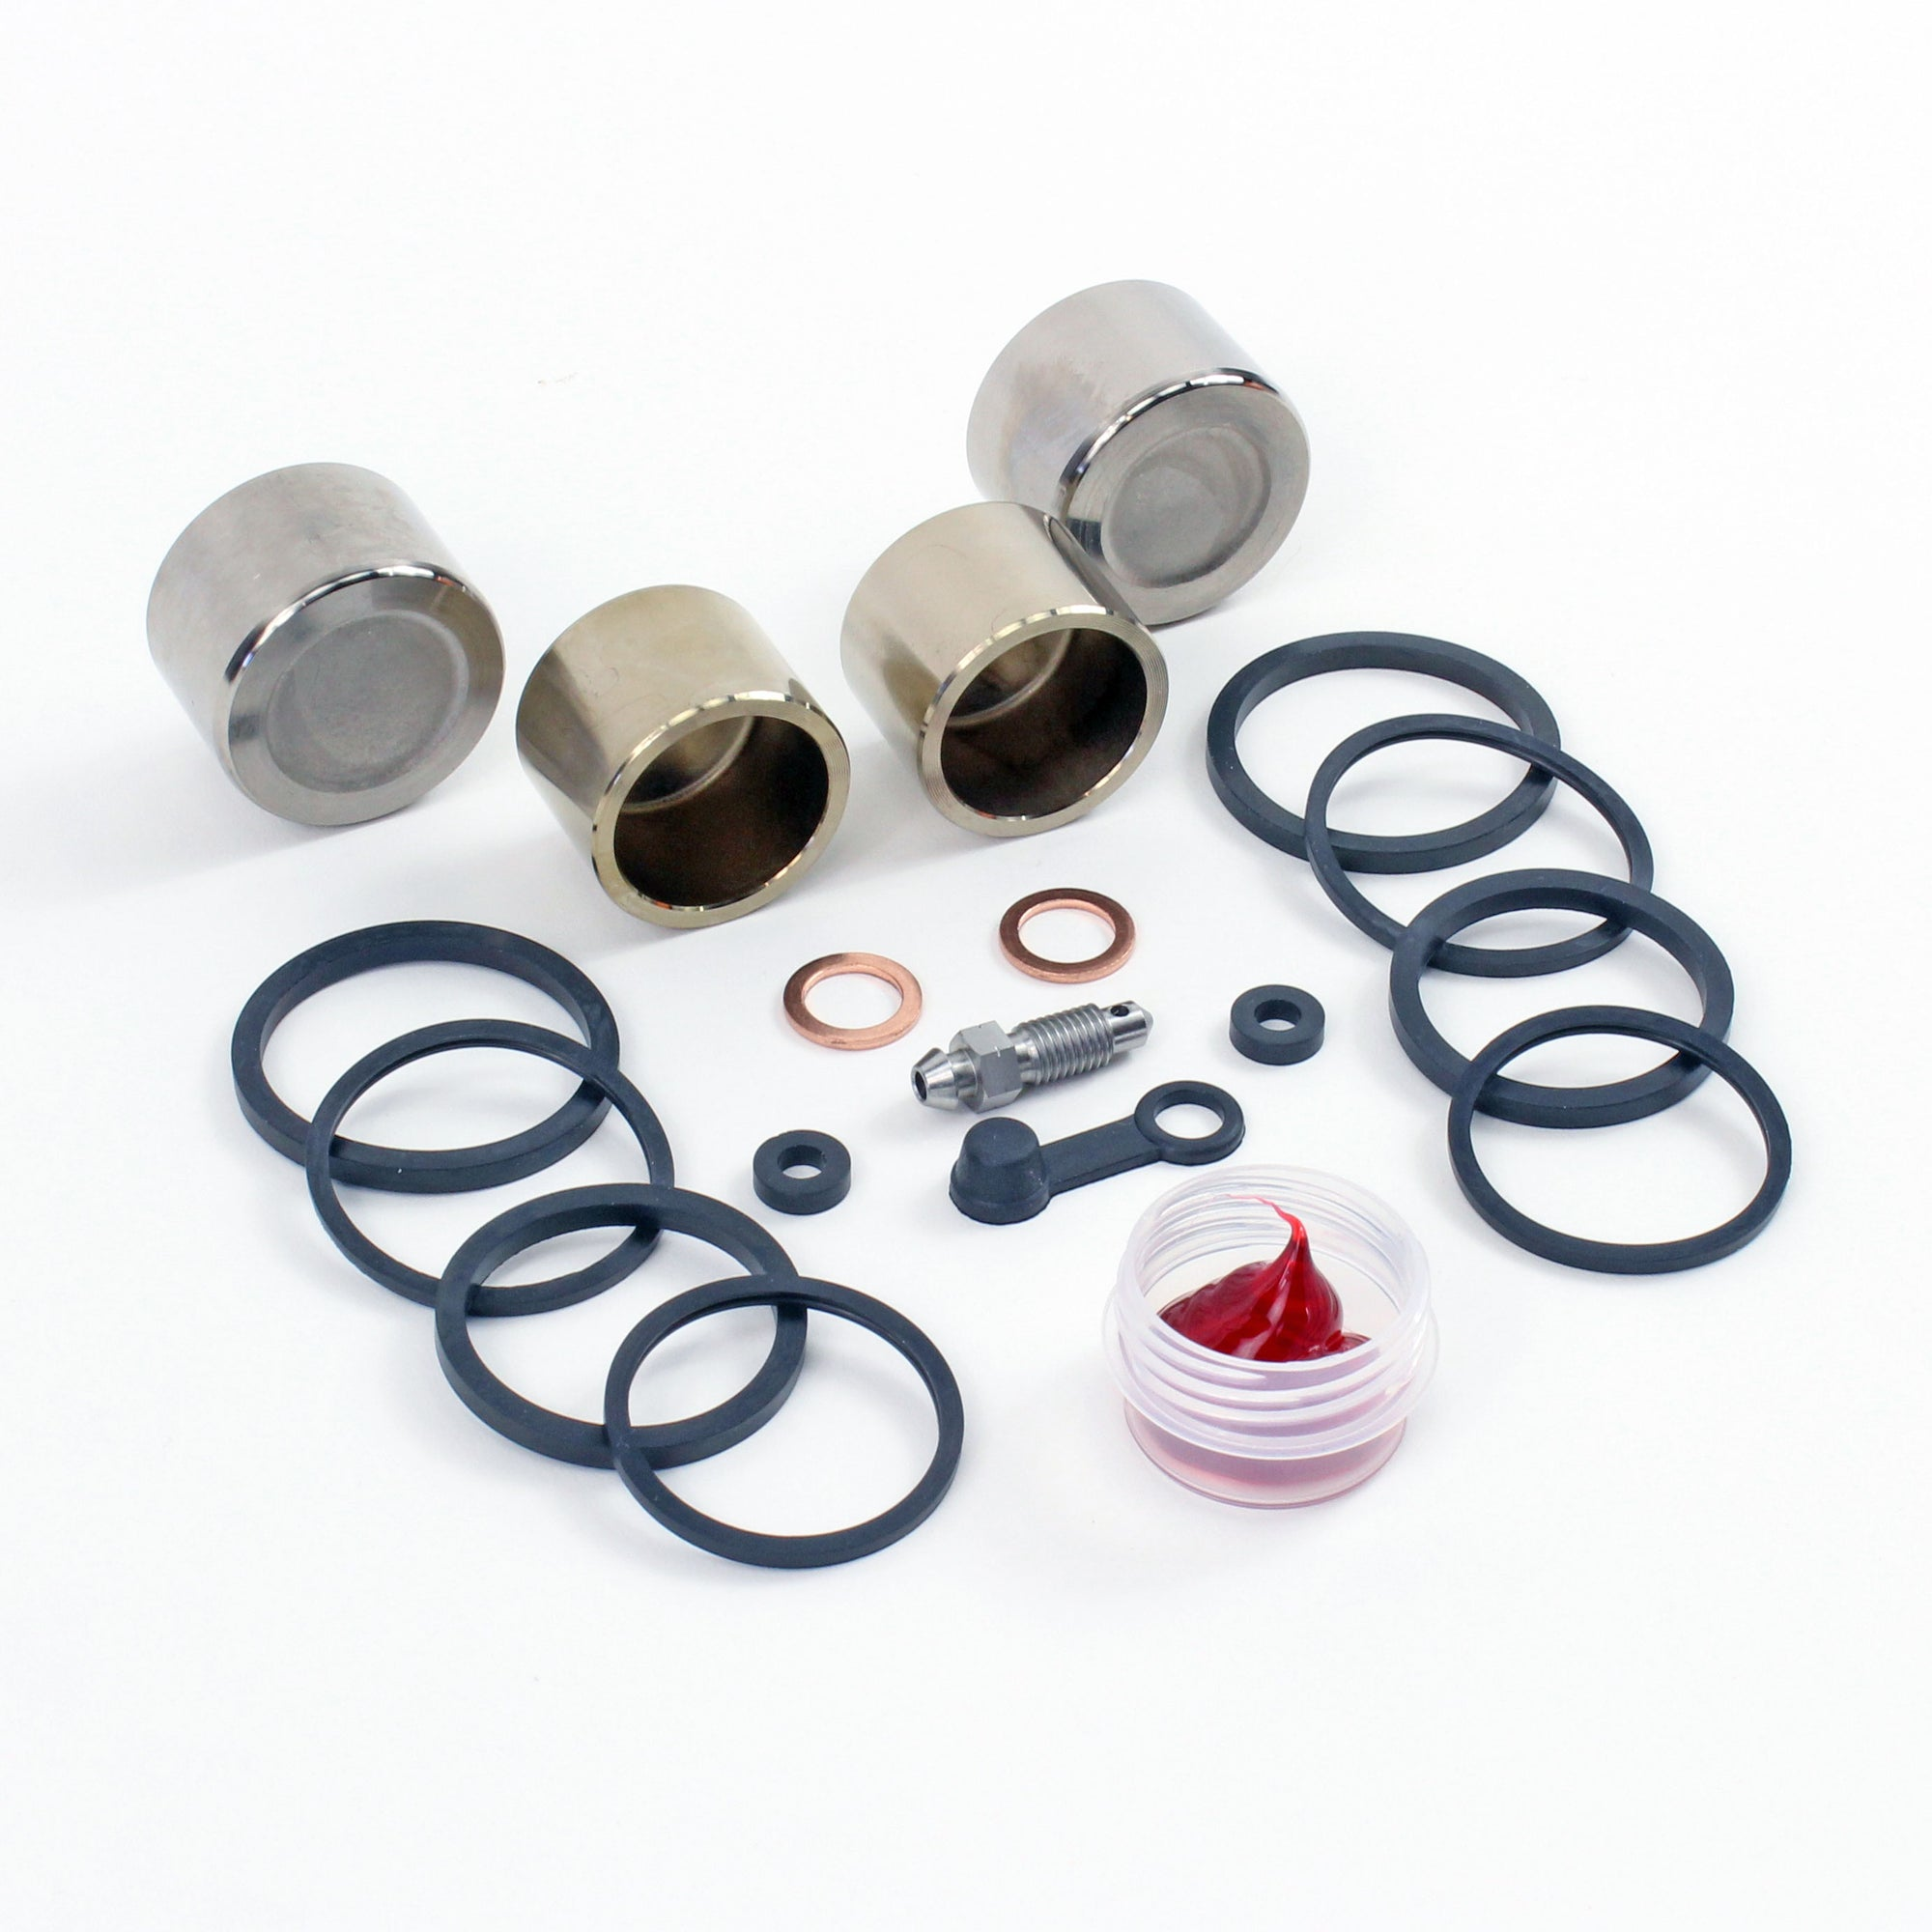 1999 - 2006 TRIUMPH TT600 SPEED4 - FRONT BRAKE CALIPER PISTON & SEAL KIT